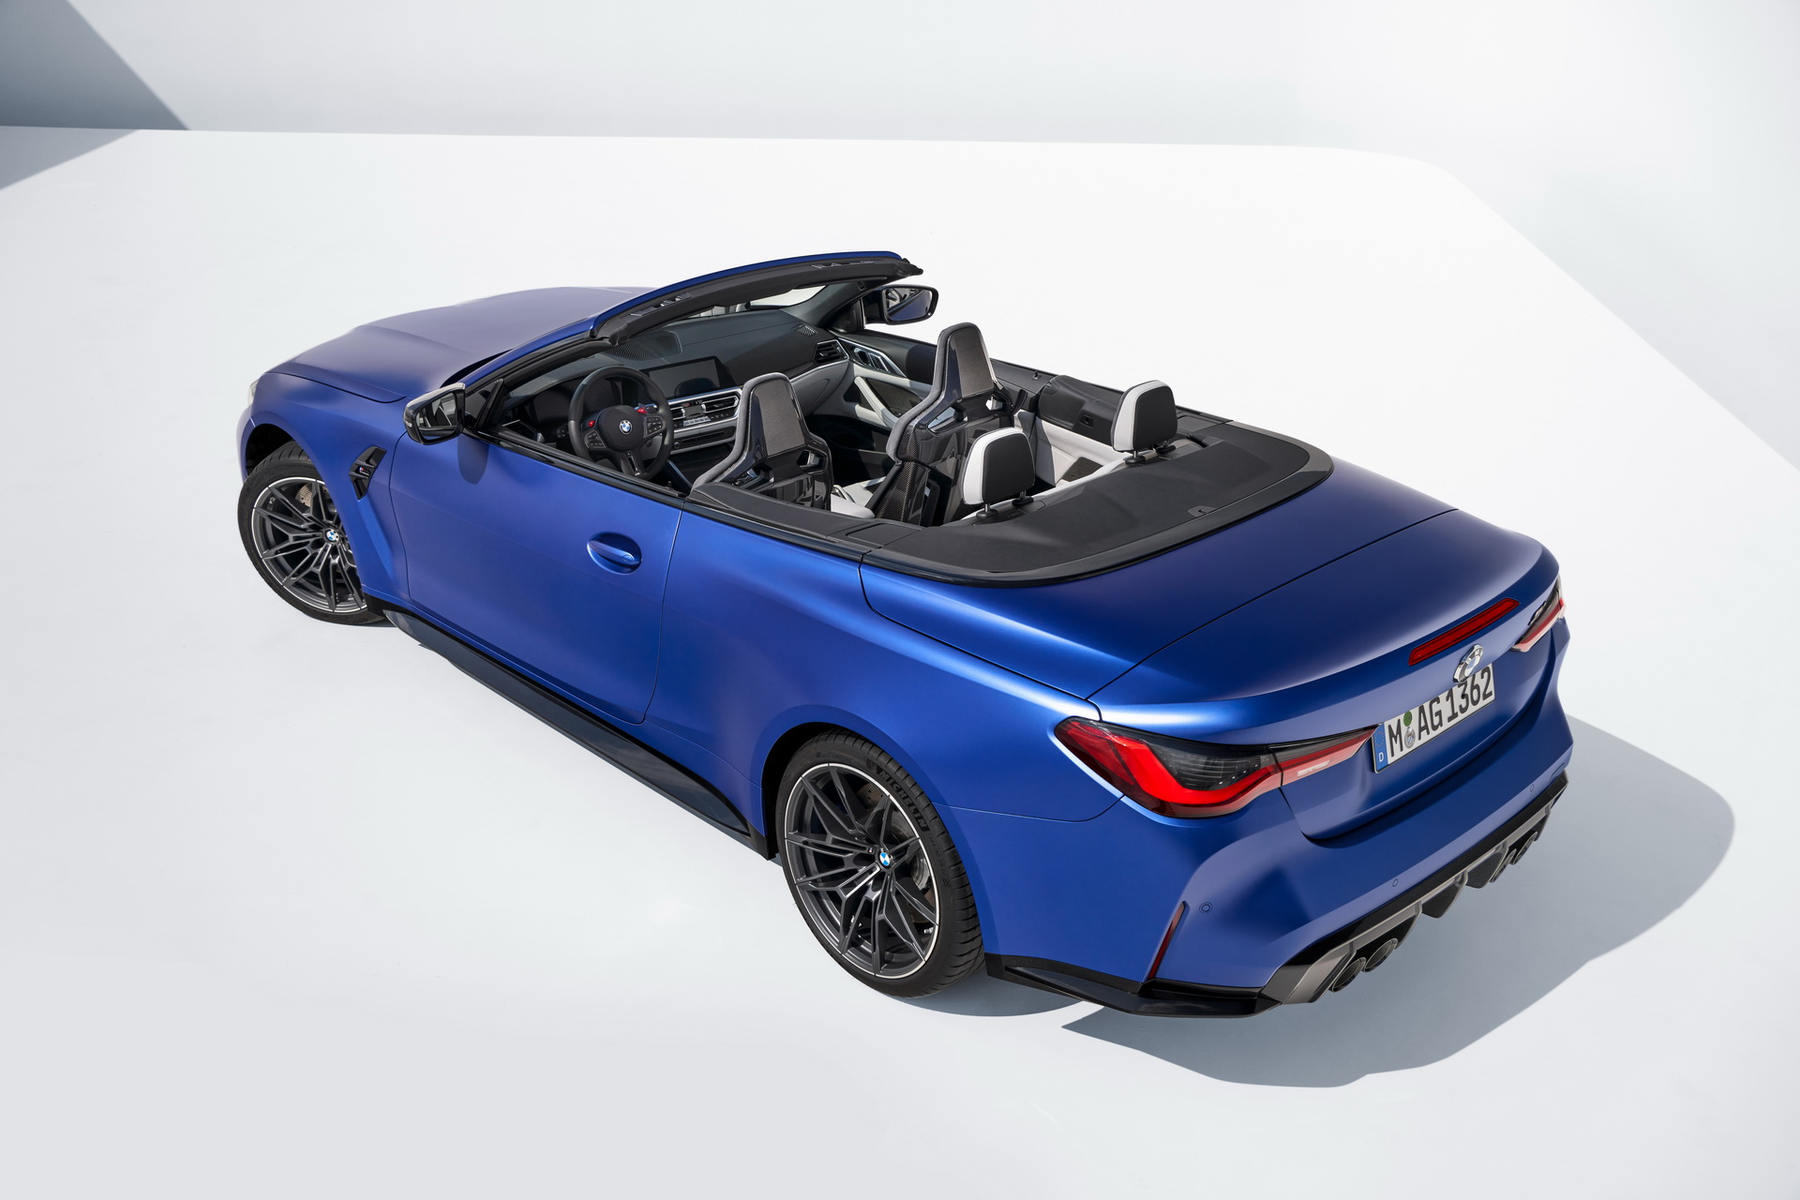 BMW-M4-Competition-Convertible-xdrive_01.jpg